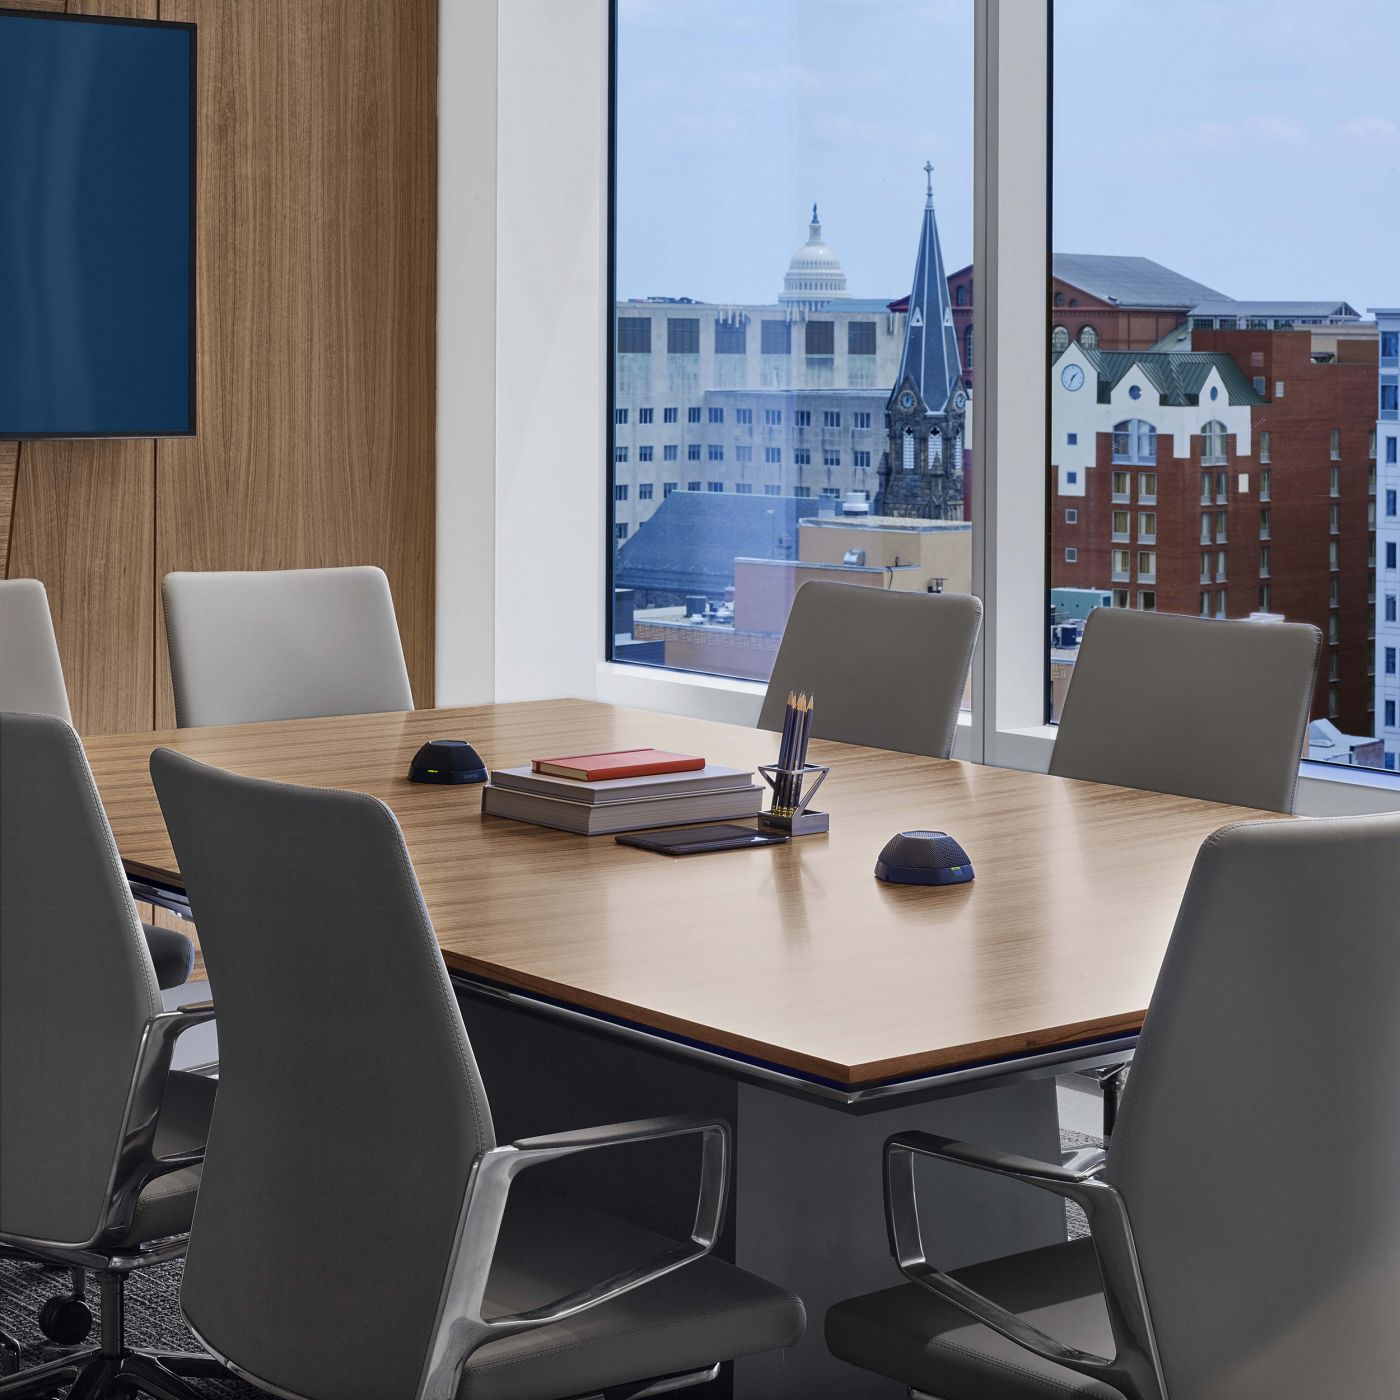 Venable features MESA conferencing in a variety of shapes and materials including this table in Polished Chrome and Paldao wood veneer